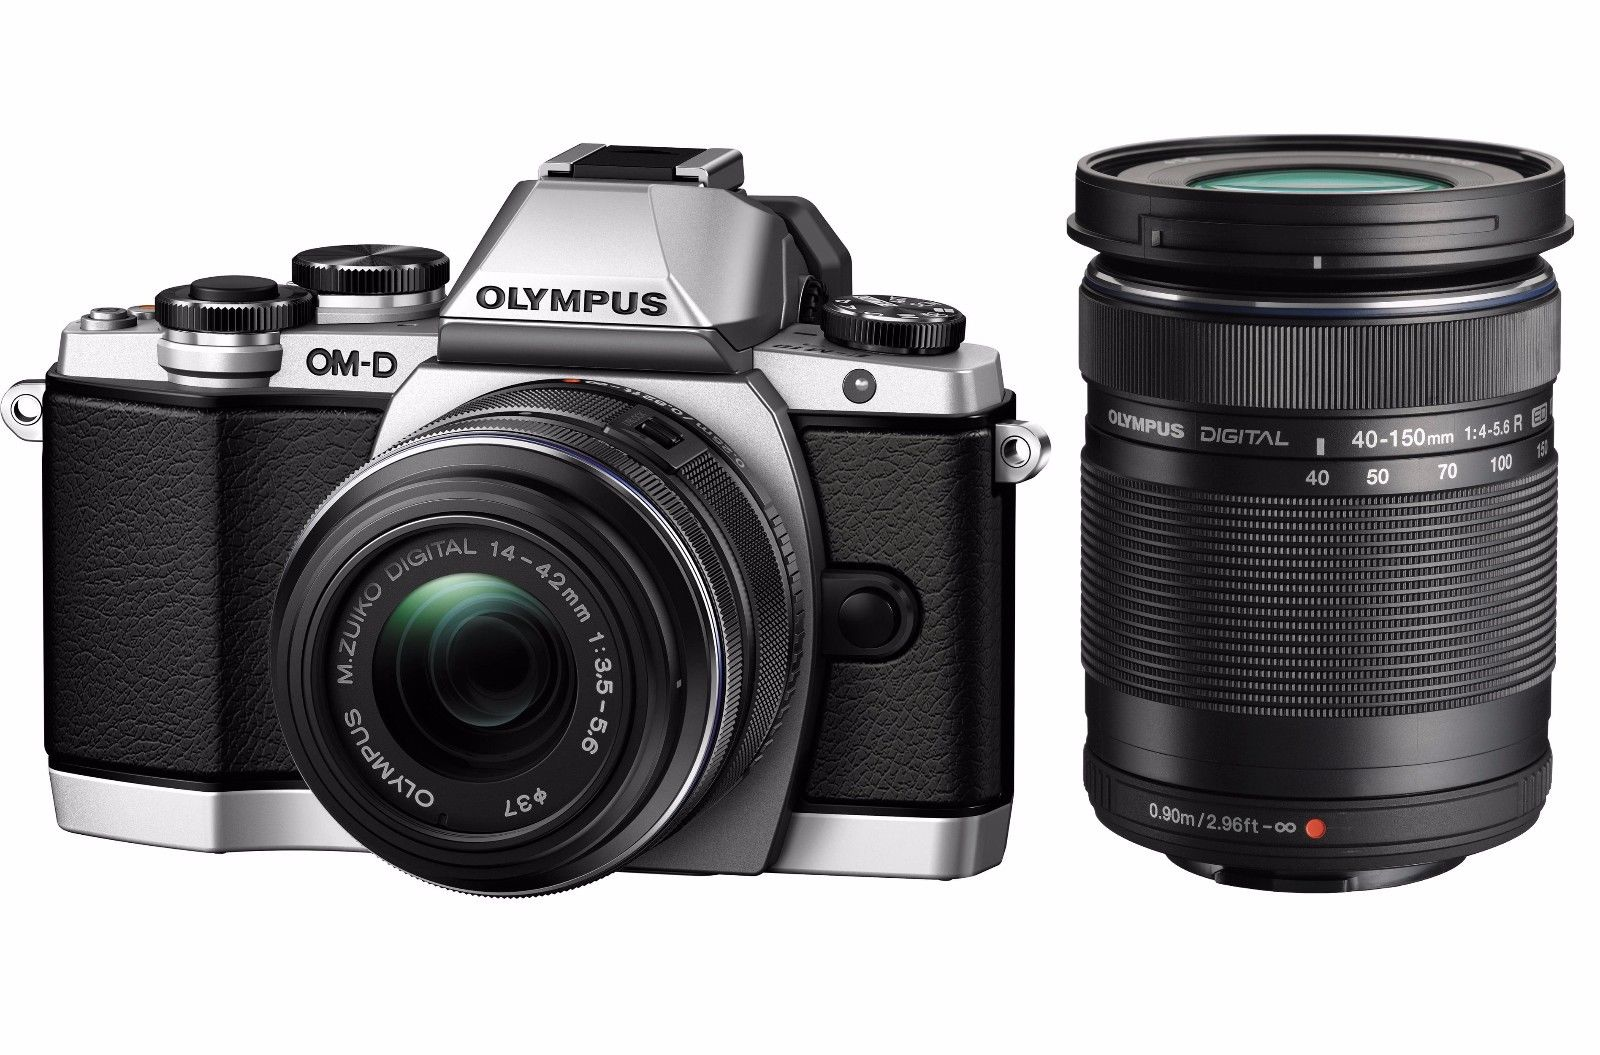 Hot Deal: Olympus E-M10 Kit w/ 14-42mm & 40-150mm Lens for $449.95